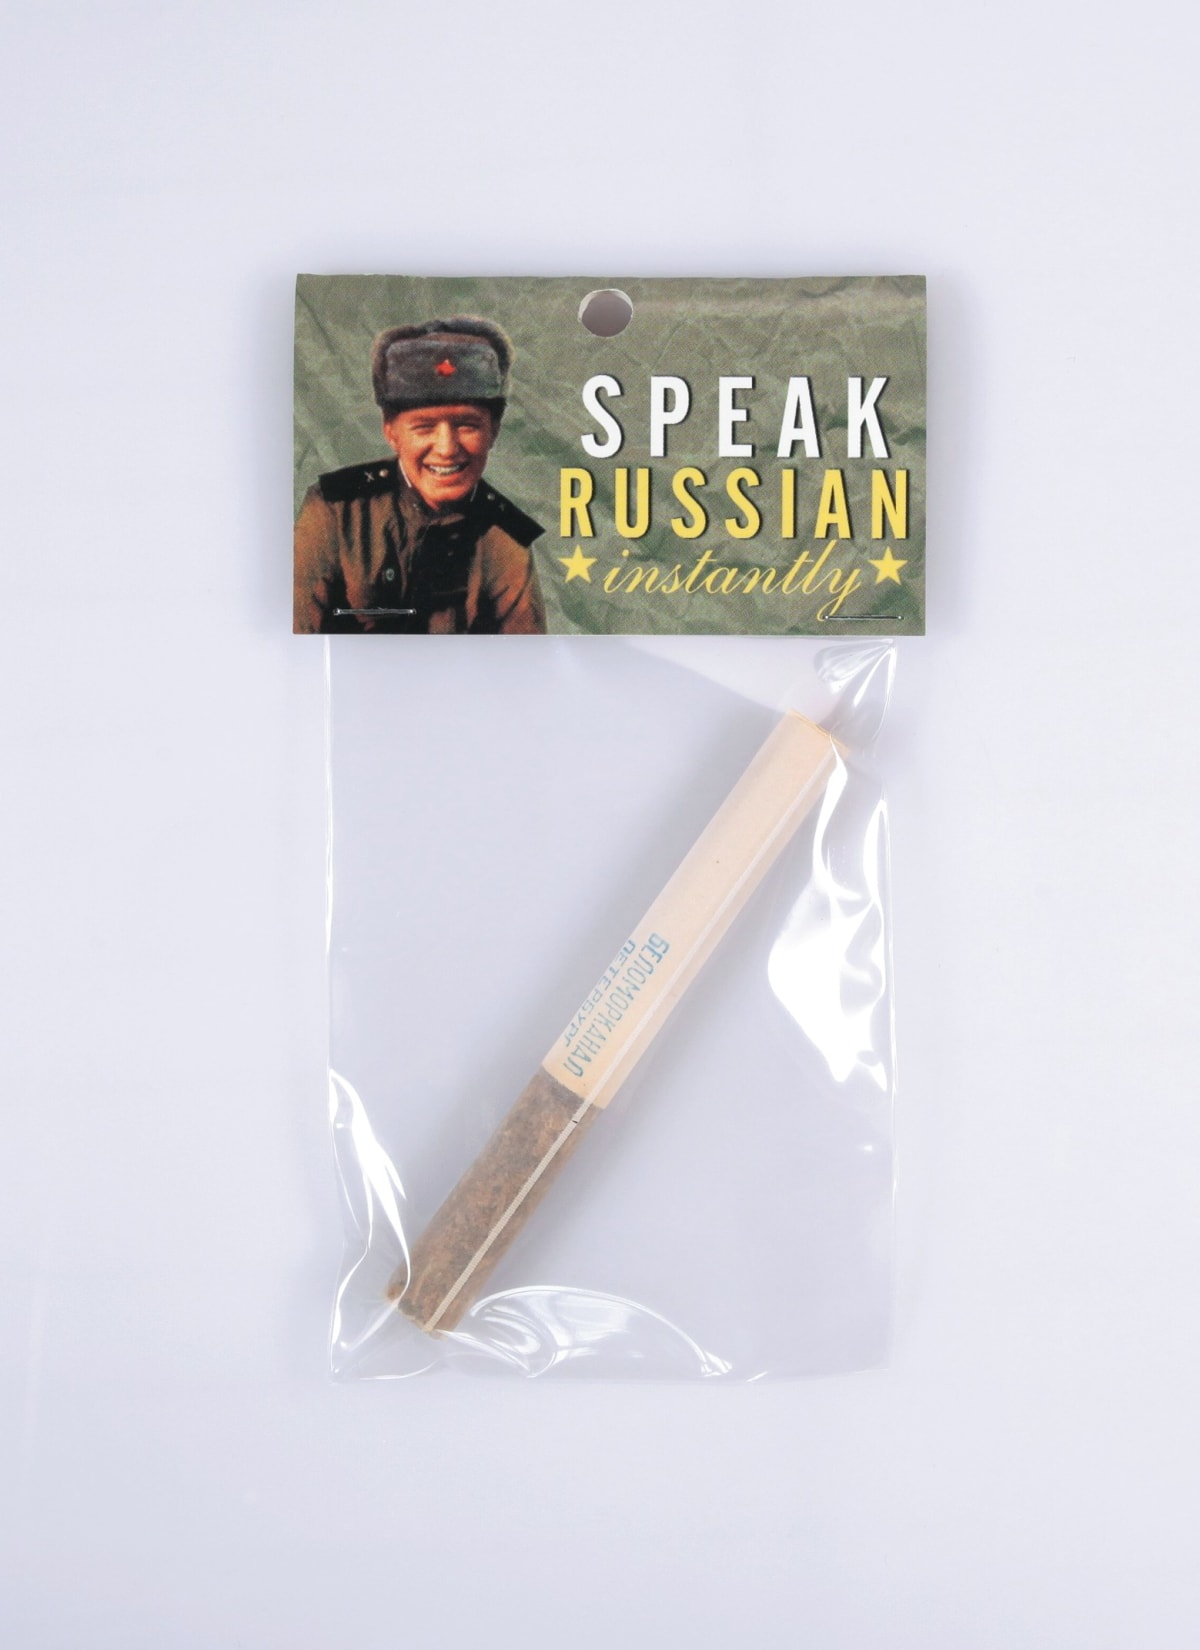 Speak Russian instantly